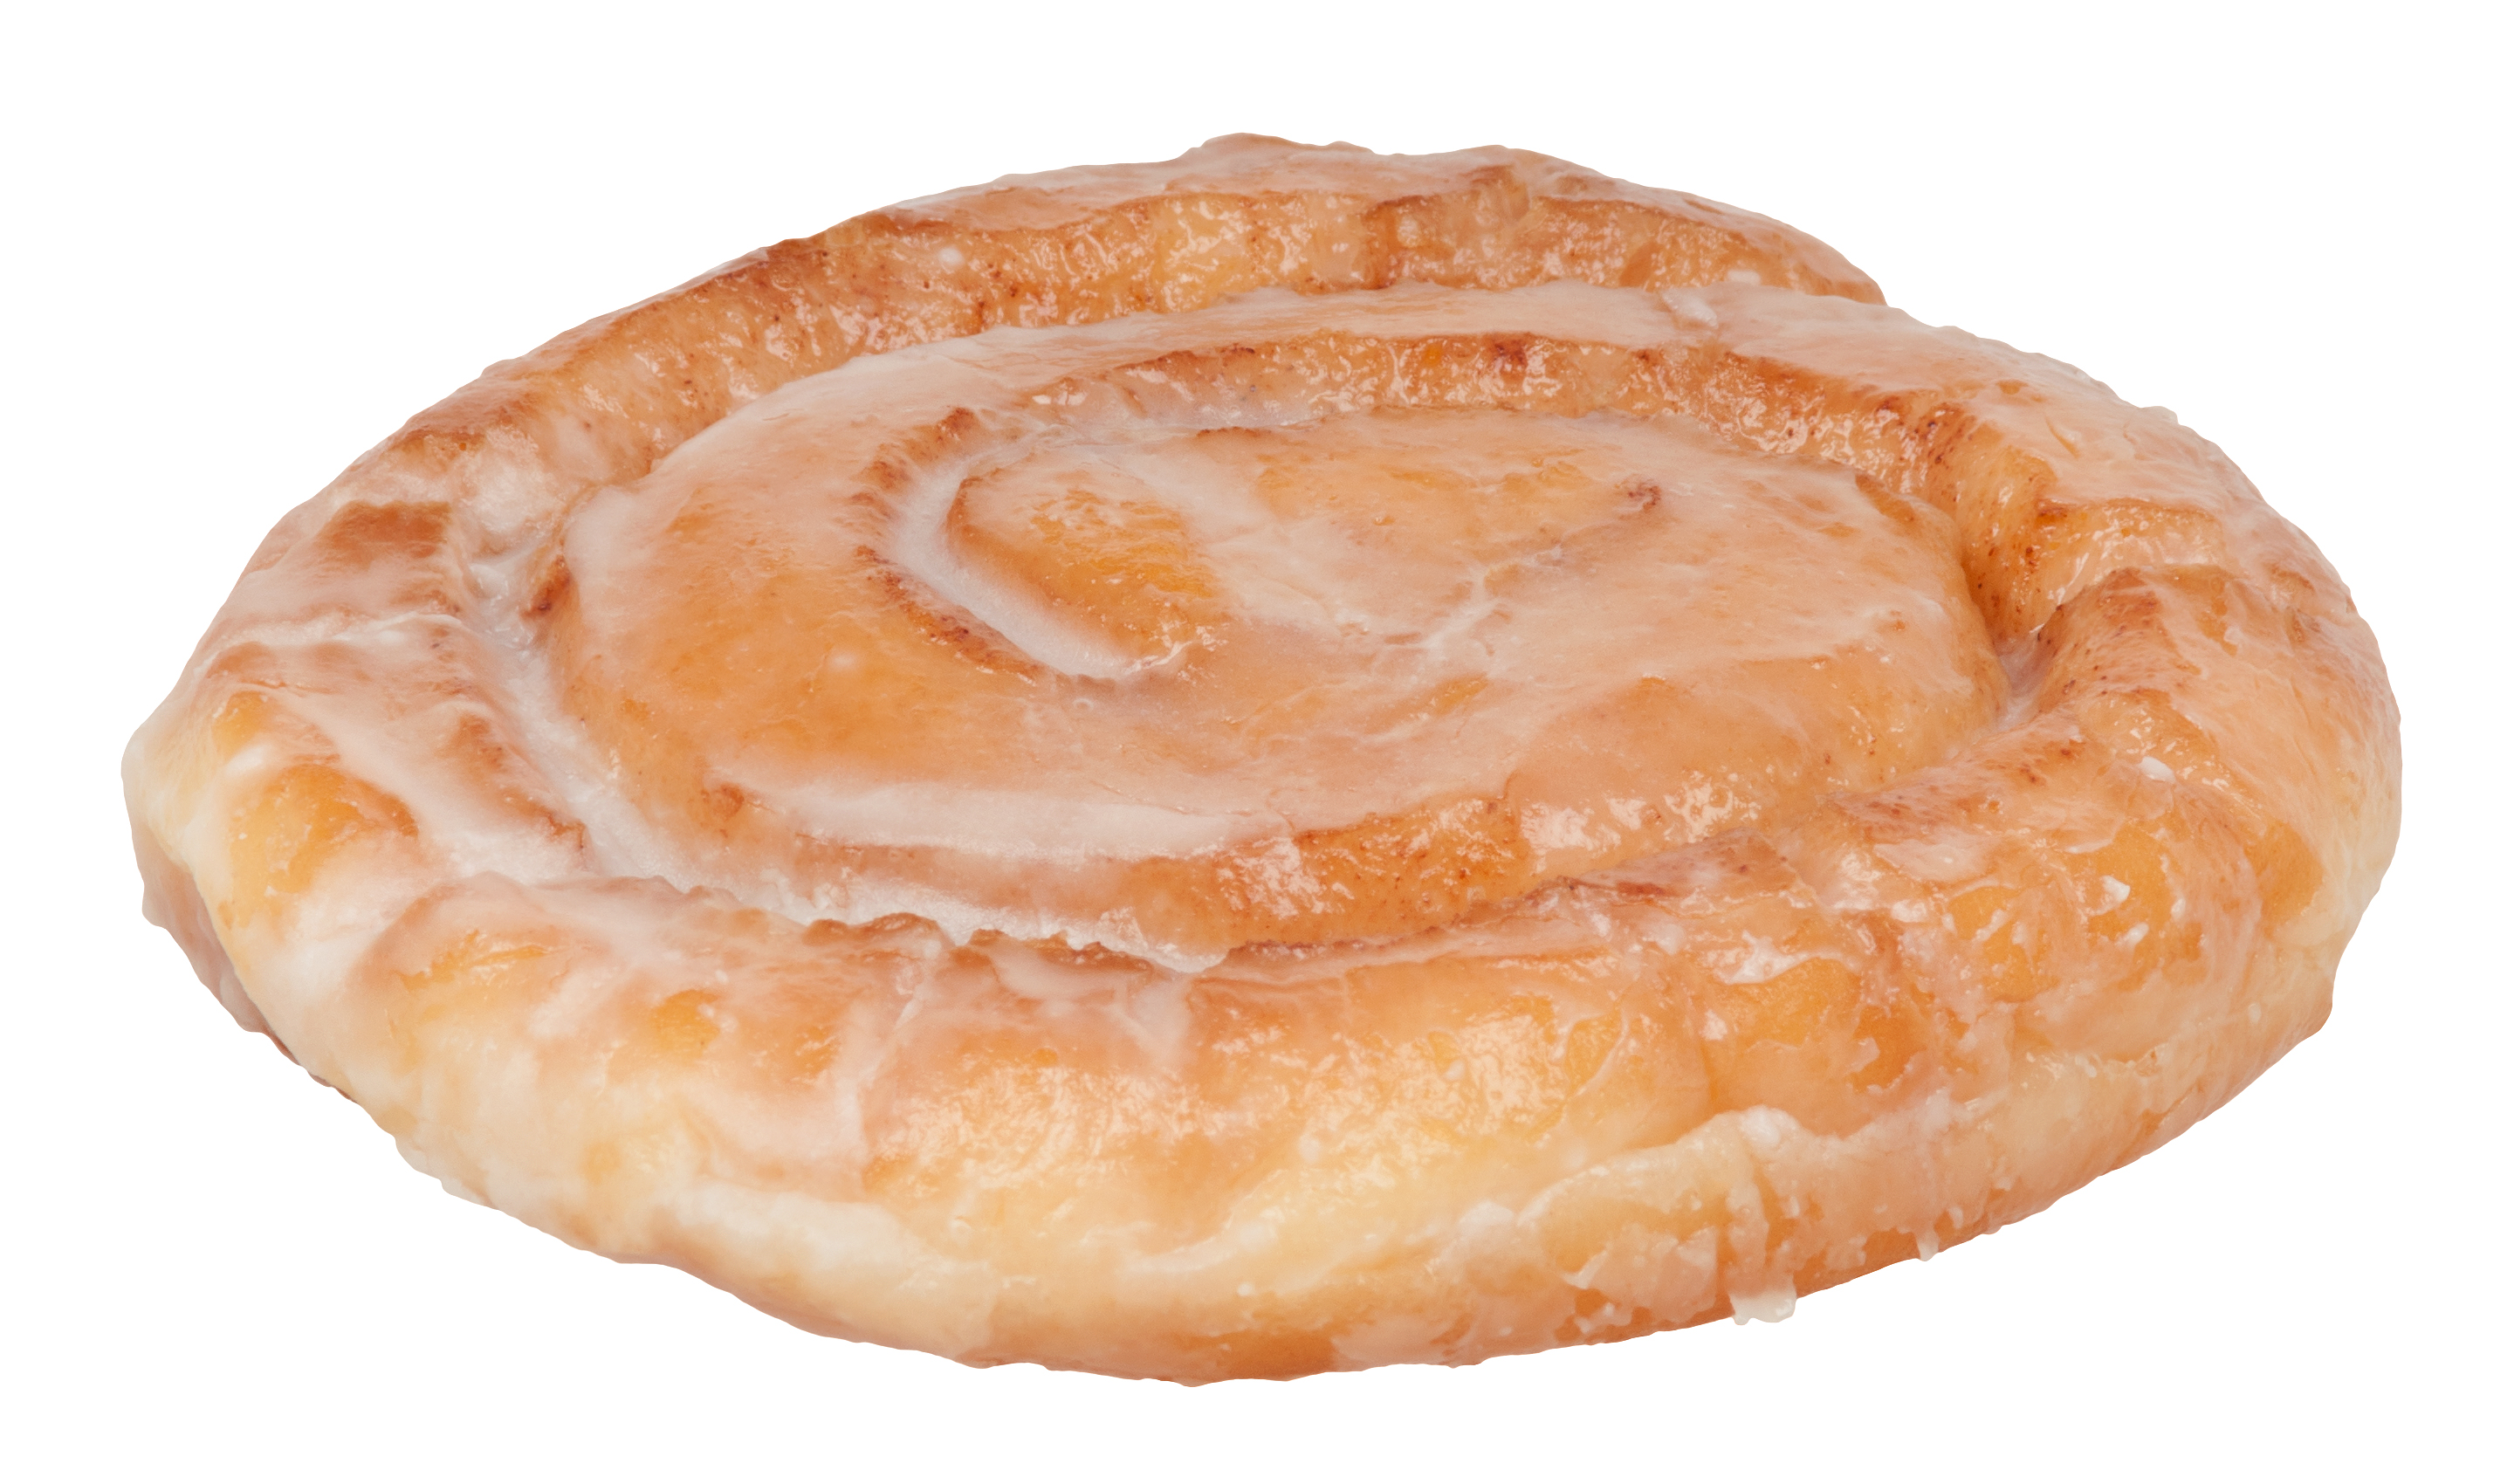 File:Little-Debbie-Honey-Bun.jpg - Wikimedia Commons